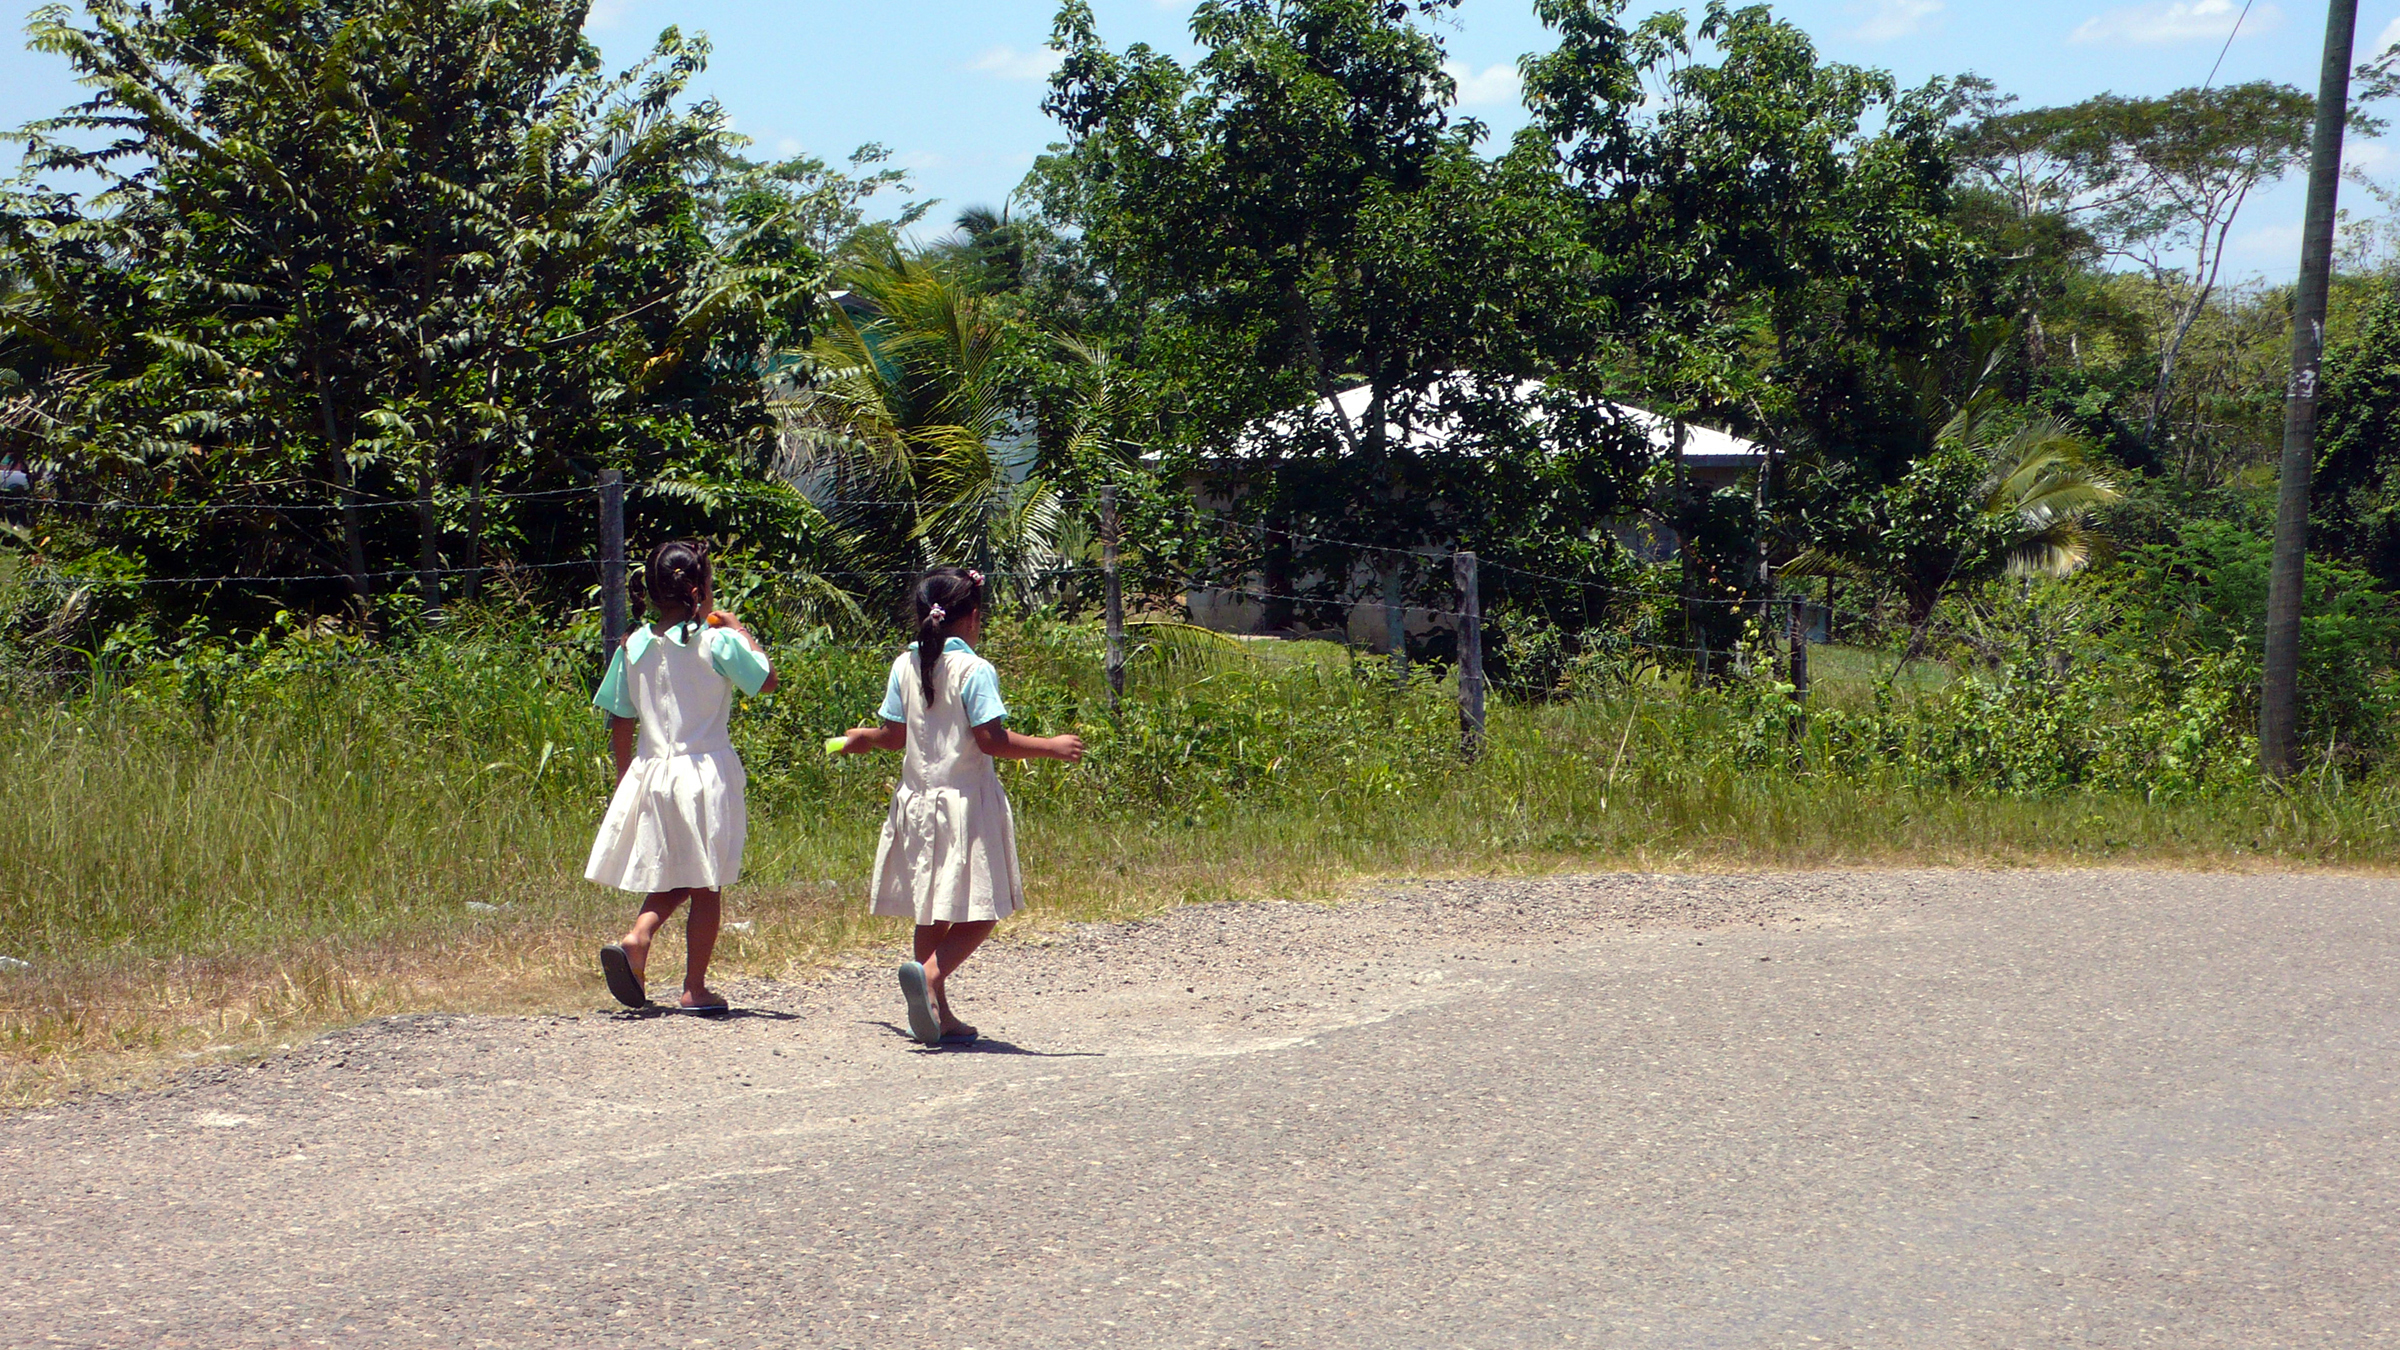 Photo taken while conducting fieldwork in Belize about access to health care